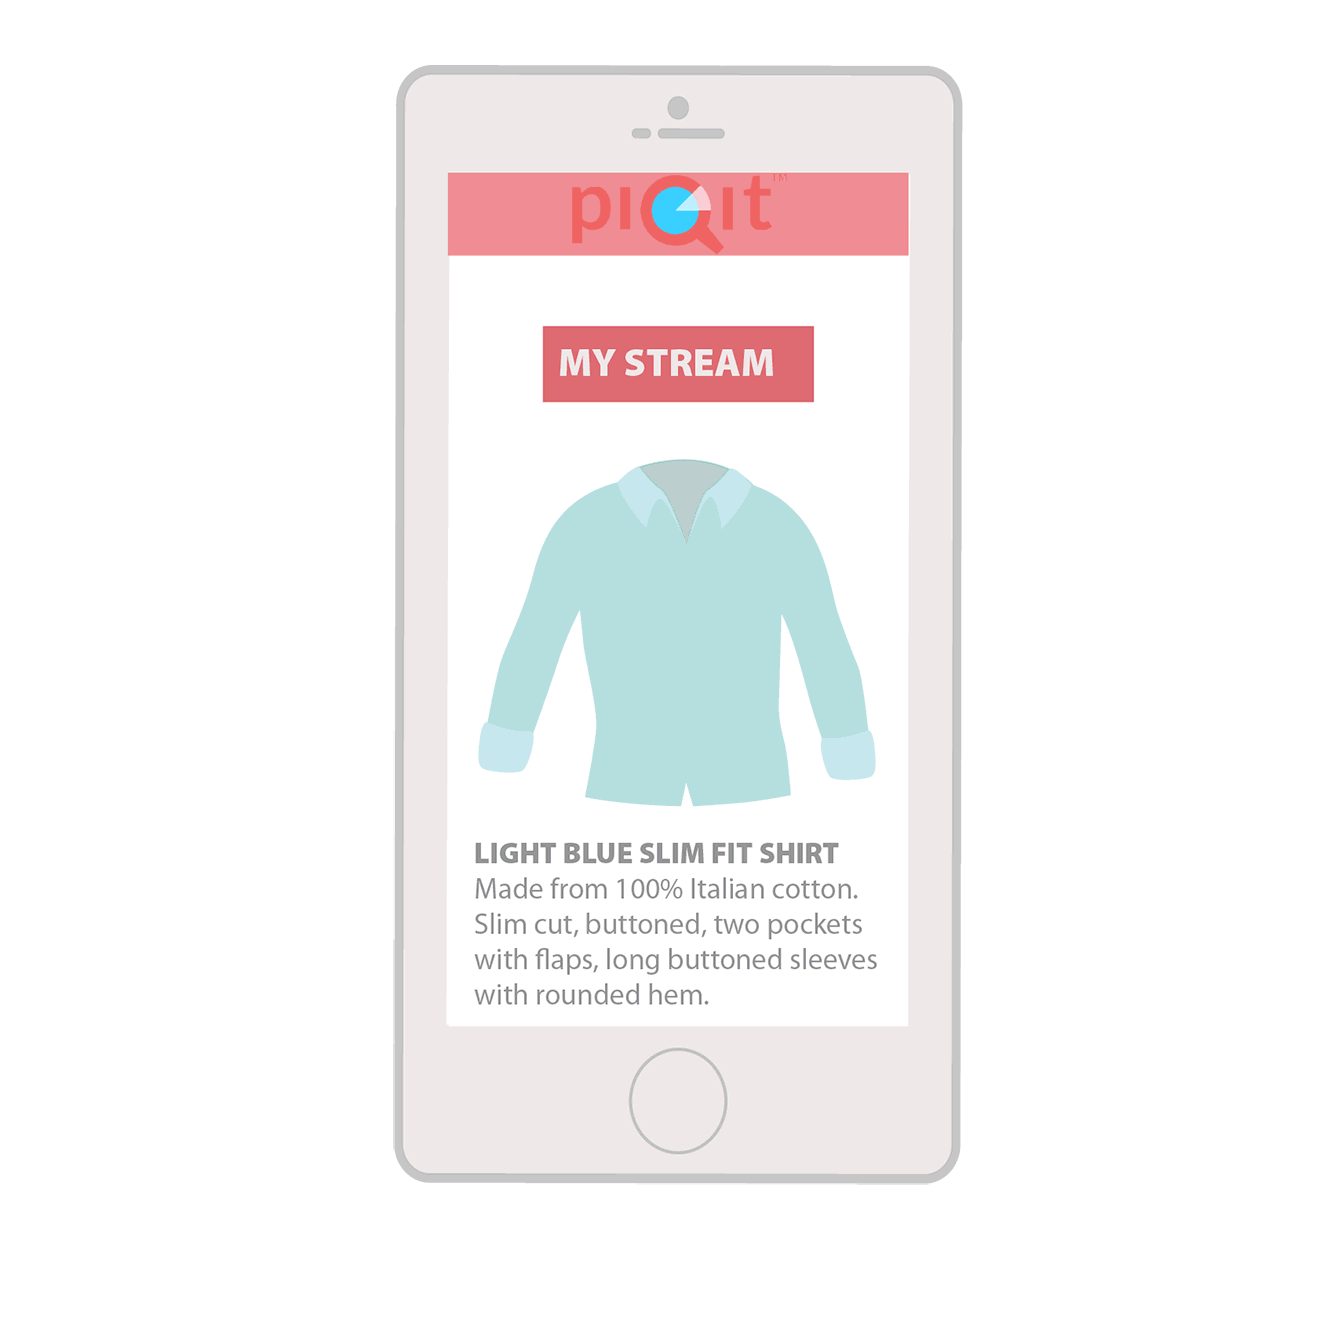 piQit -  Your personal styling assistant